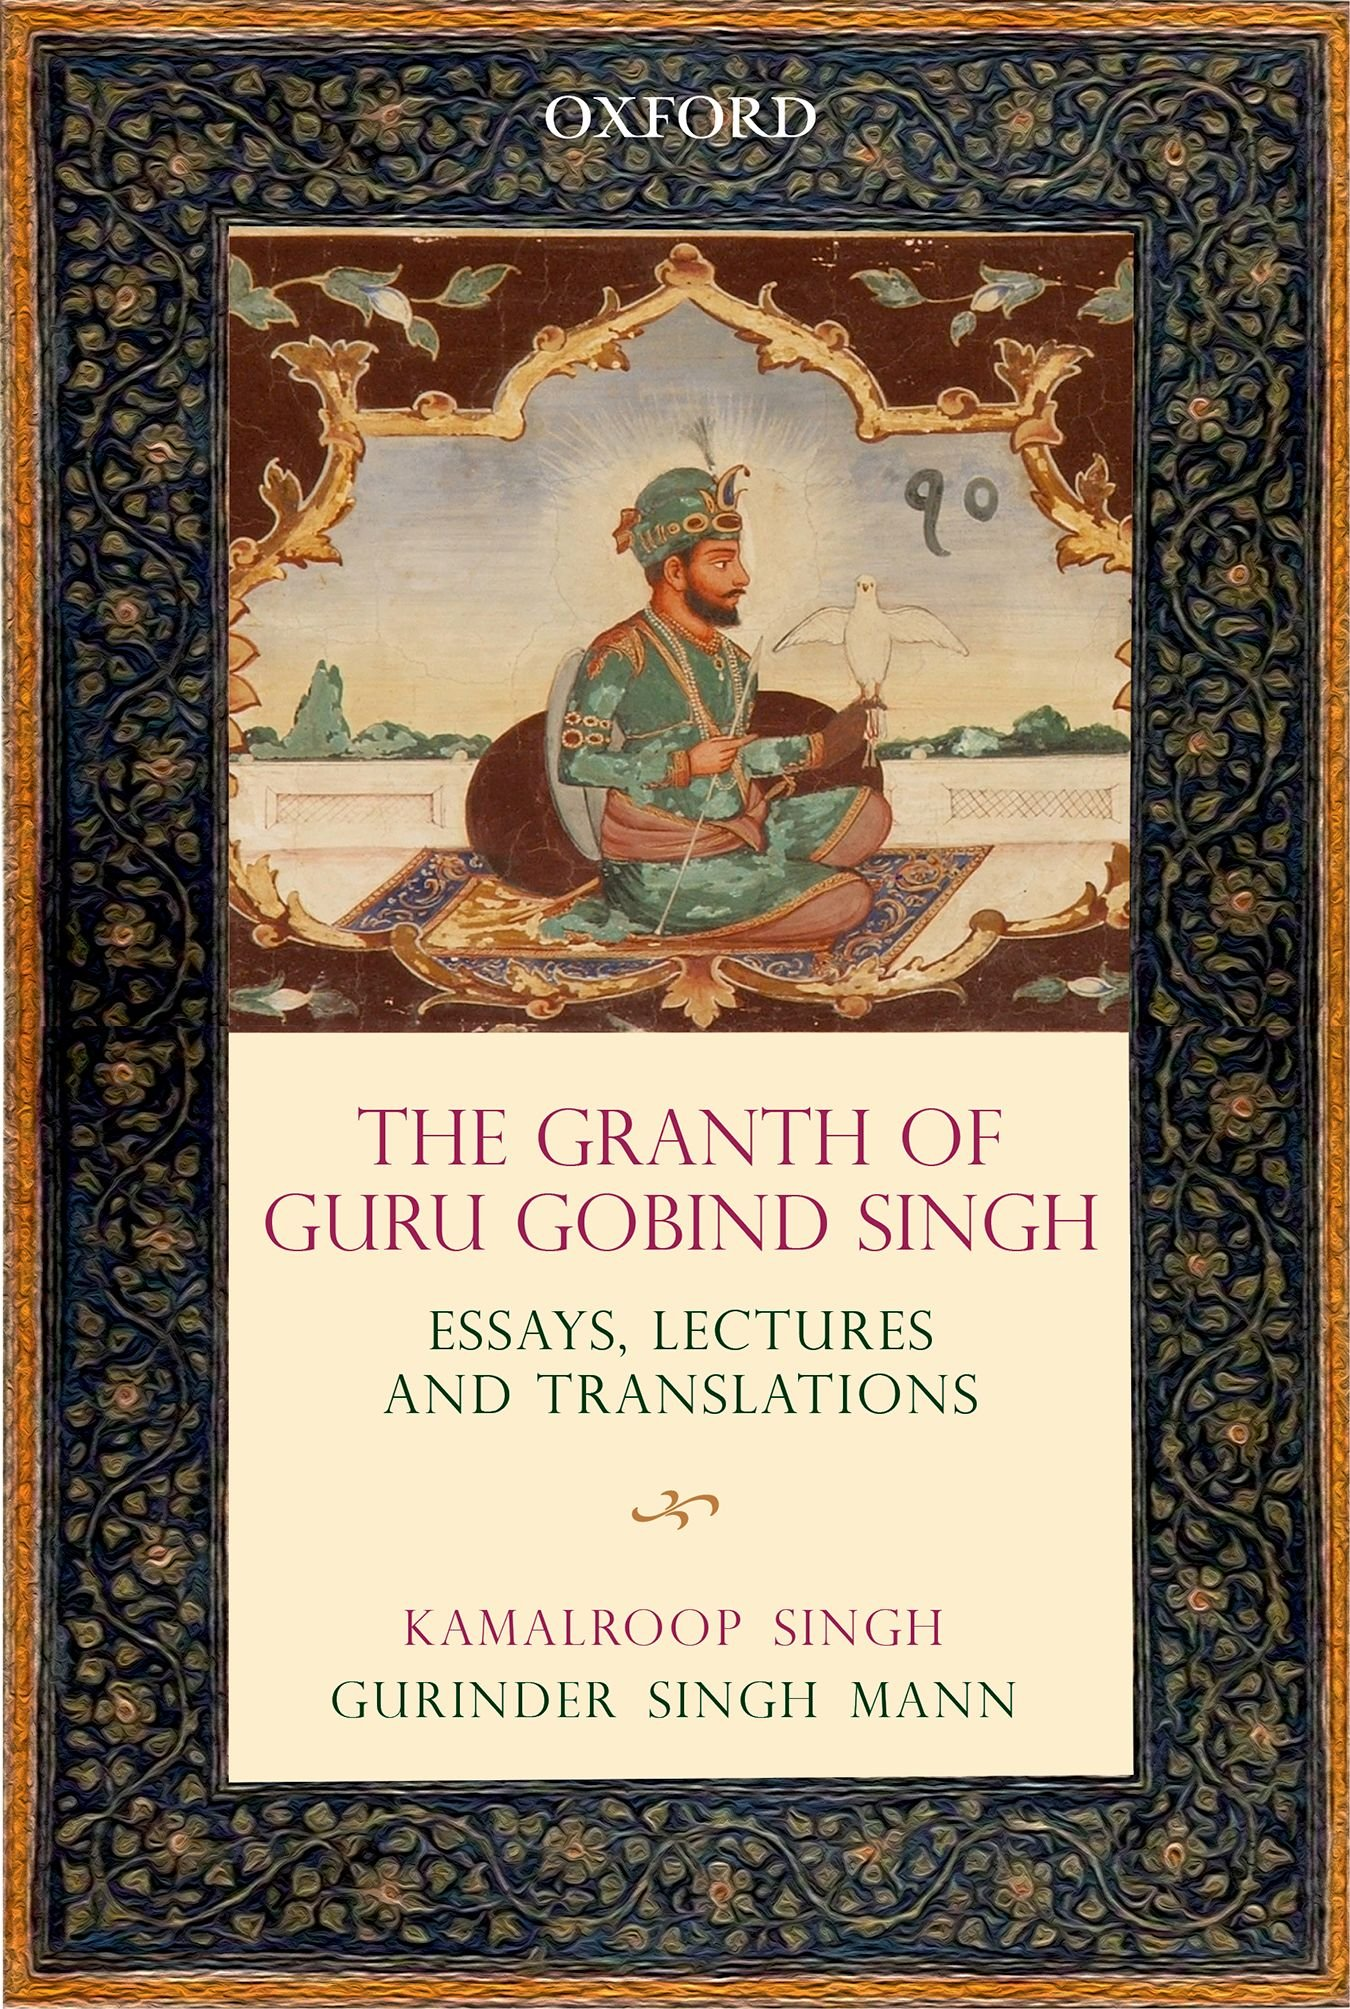 Book of Kamalroop Singh